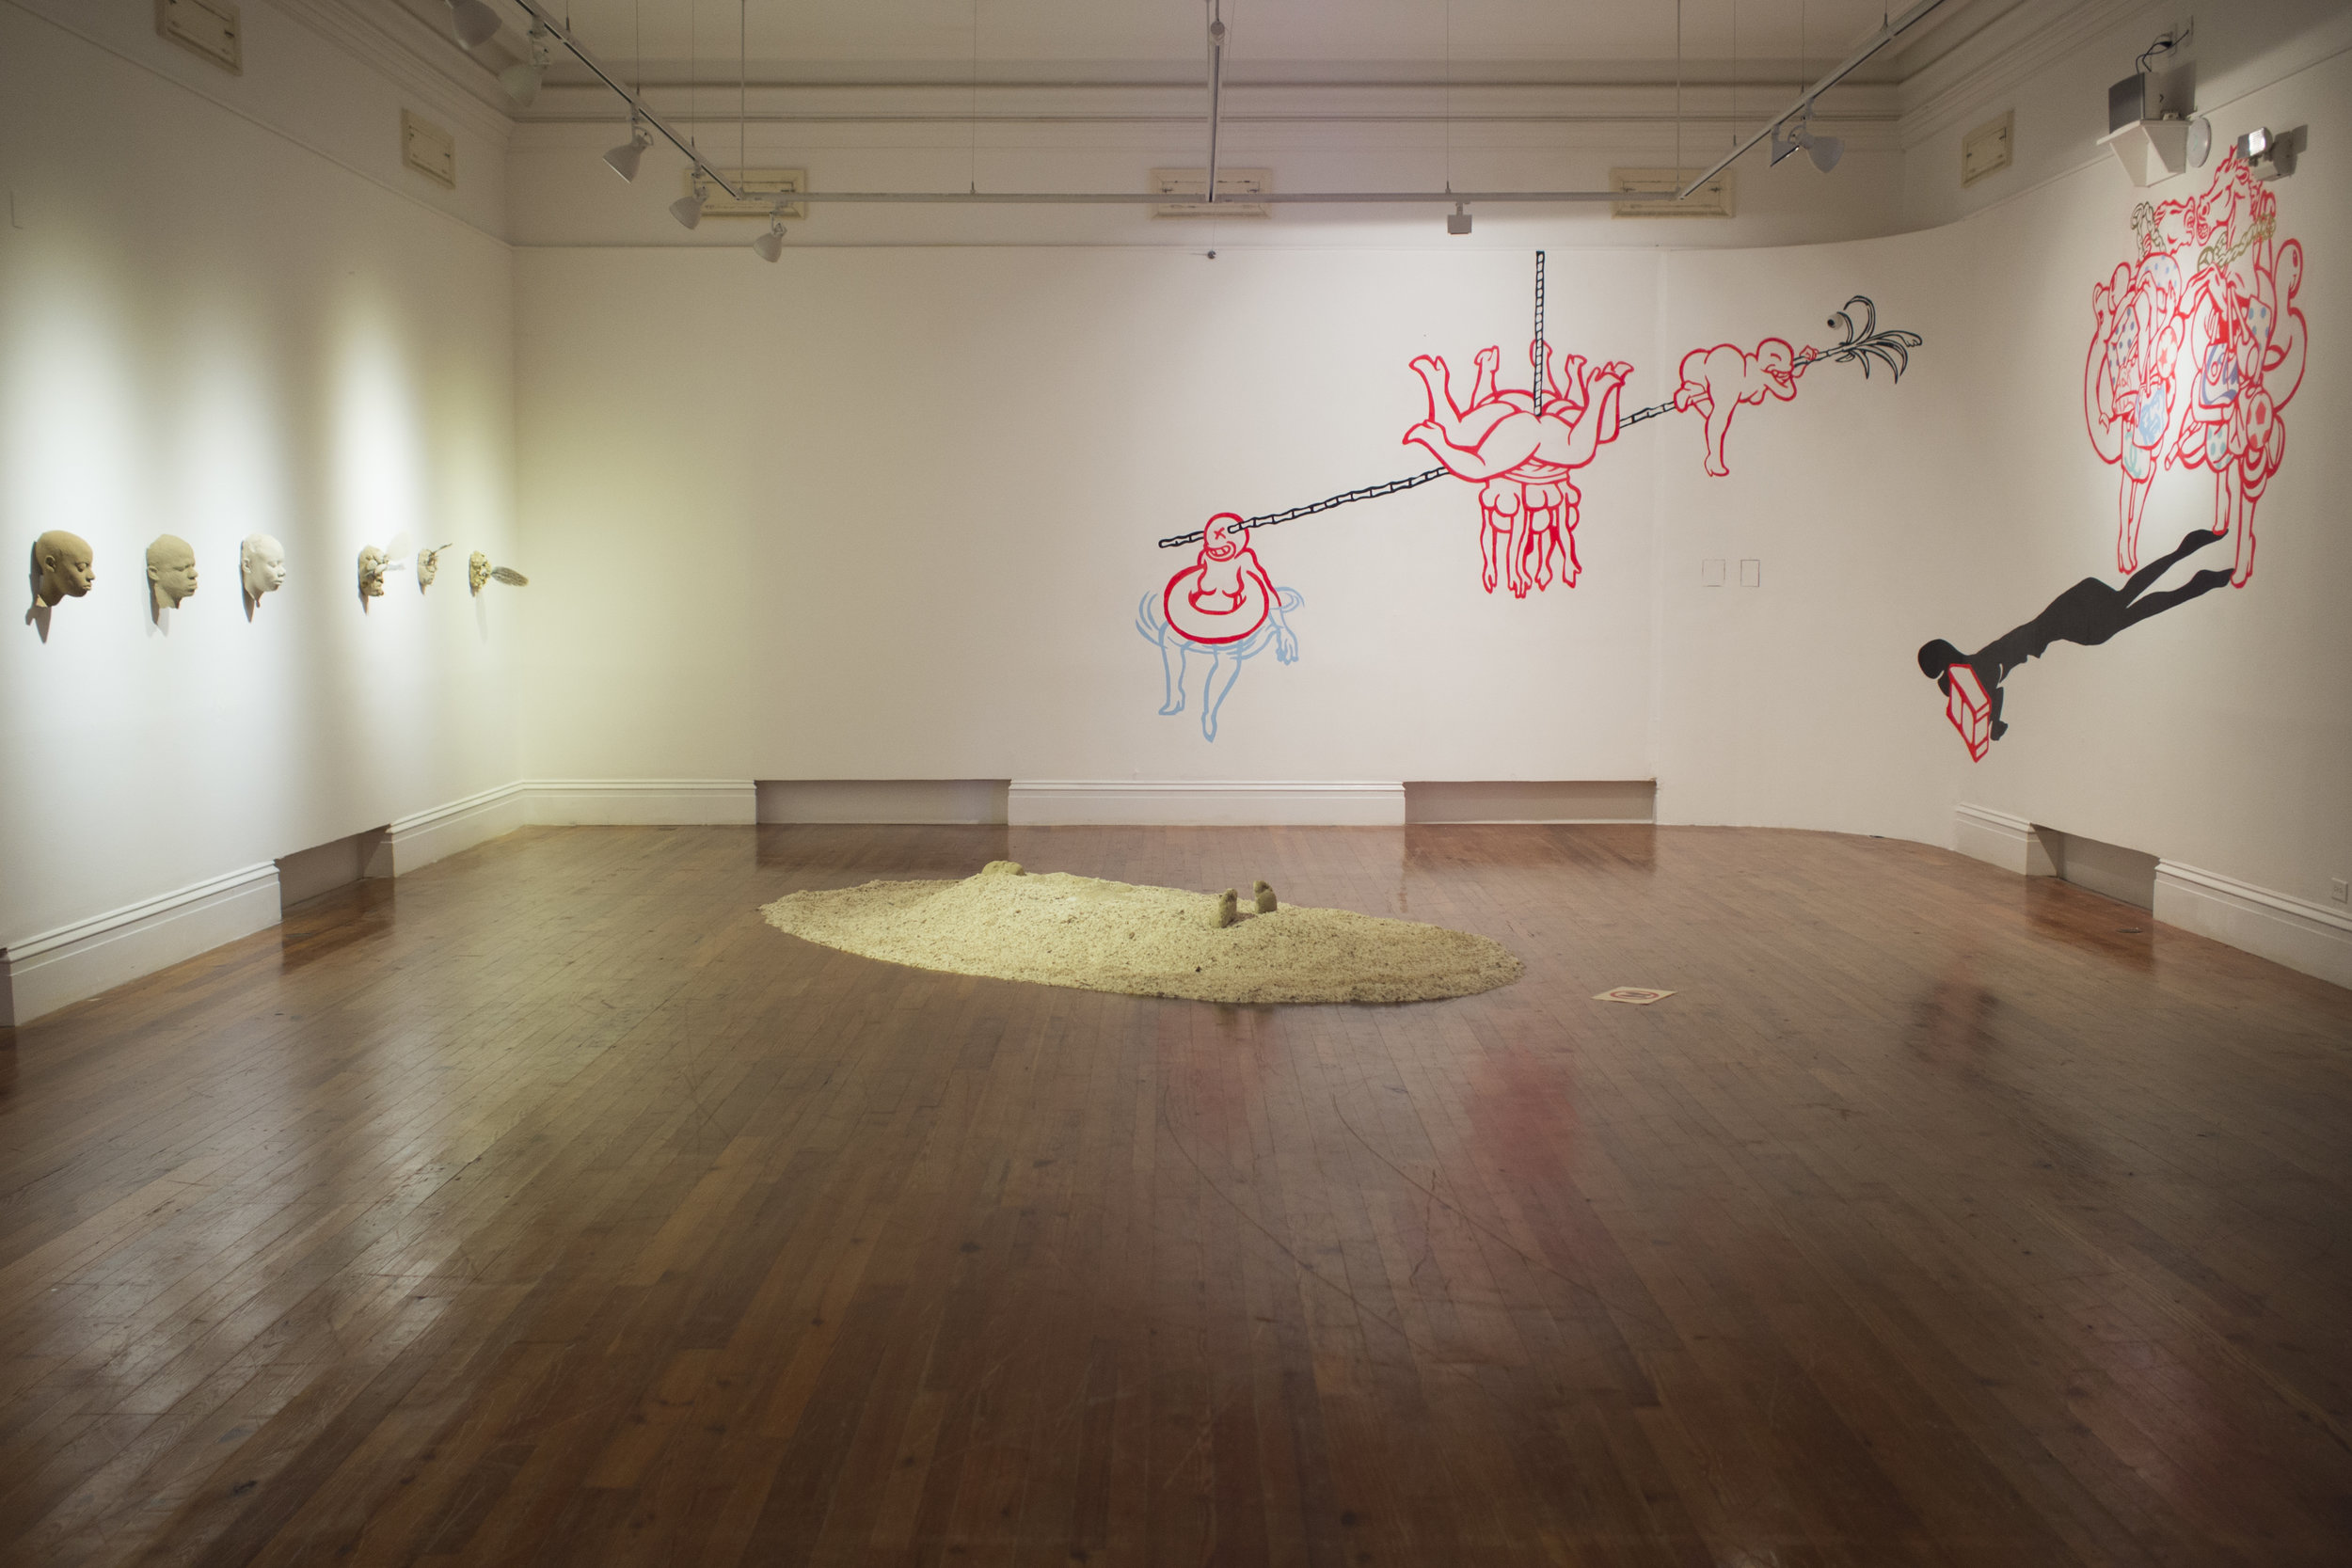 """Install shot of Edrin Symonette's """"Island Life: The Ballad of Deangelo Johnson for Quakoo Street"""" as a part of Double Dutch, """"Of Skin and Sand"""" on view through September 24th at the NAGB."""